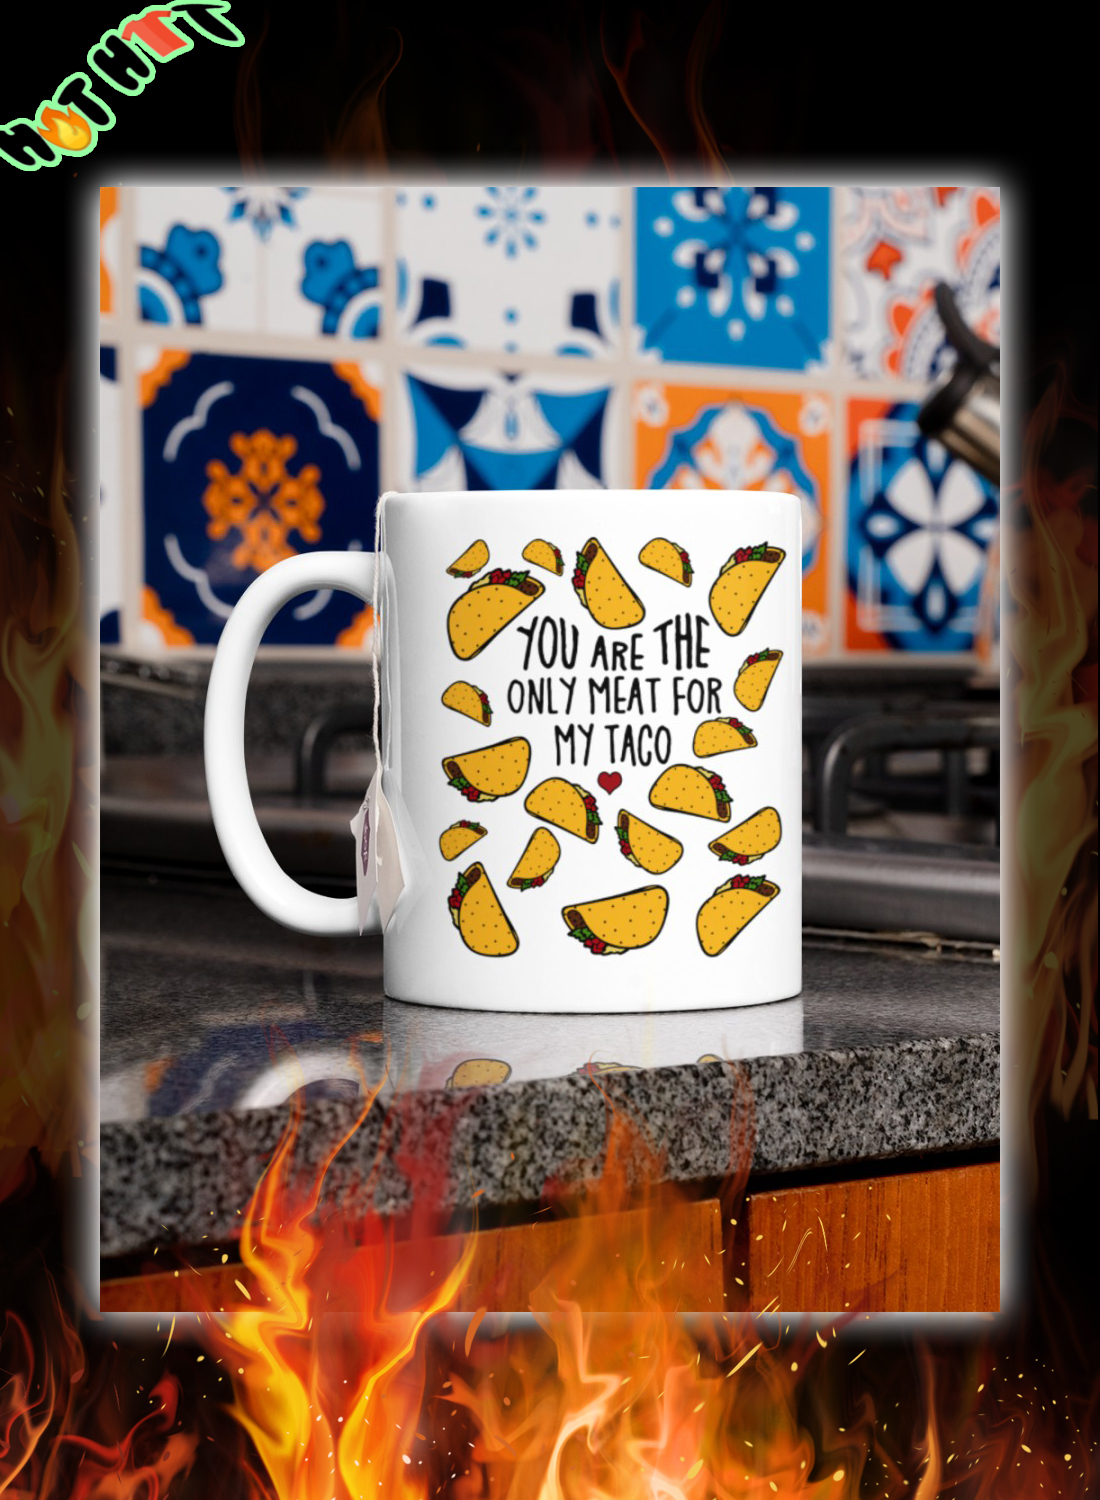 You are only meat for my taco mug